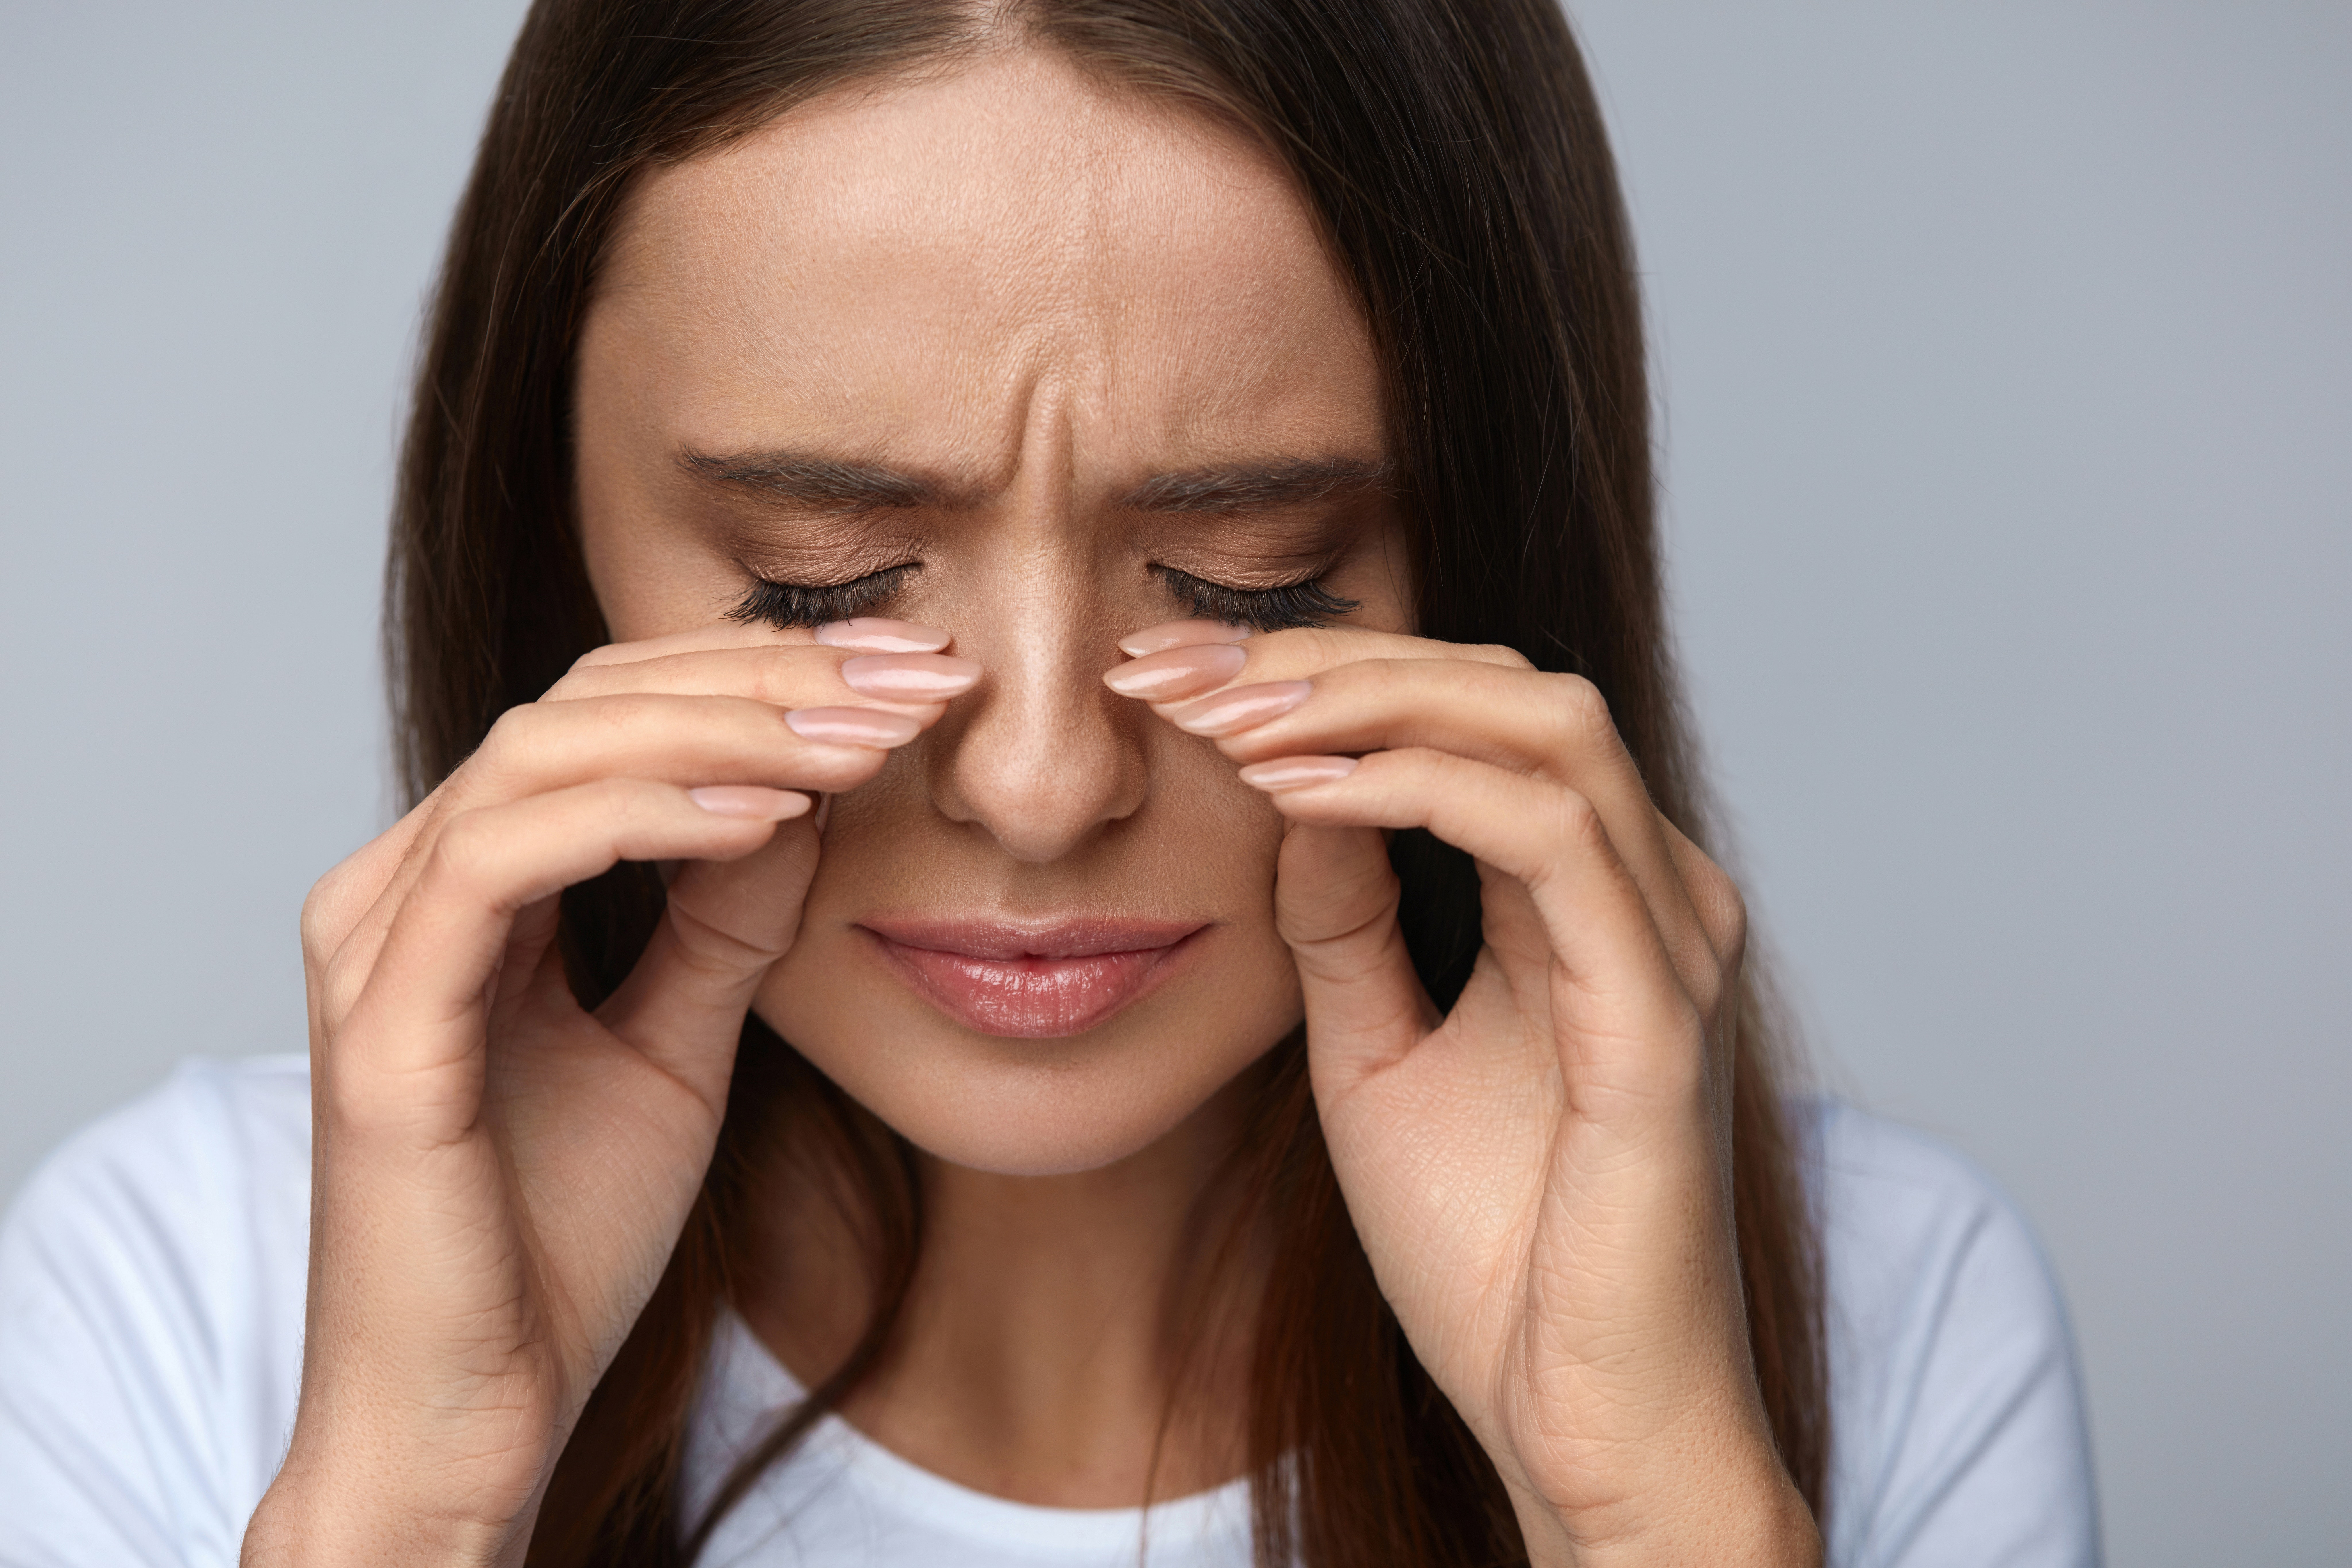 An image depicting a person suffering from Orbital Cellulitis symptoms